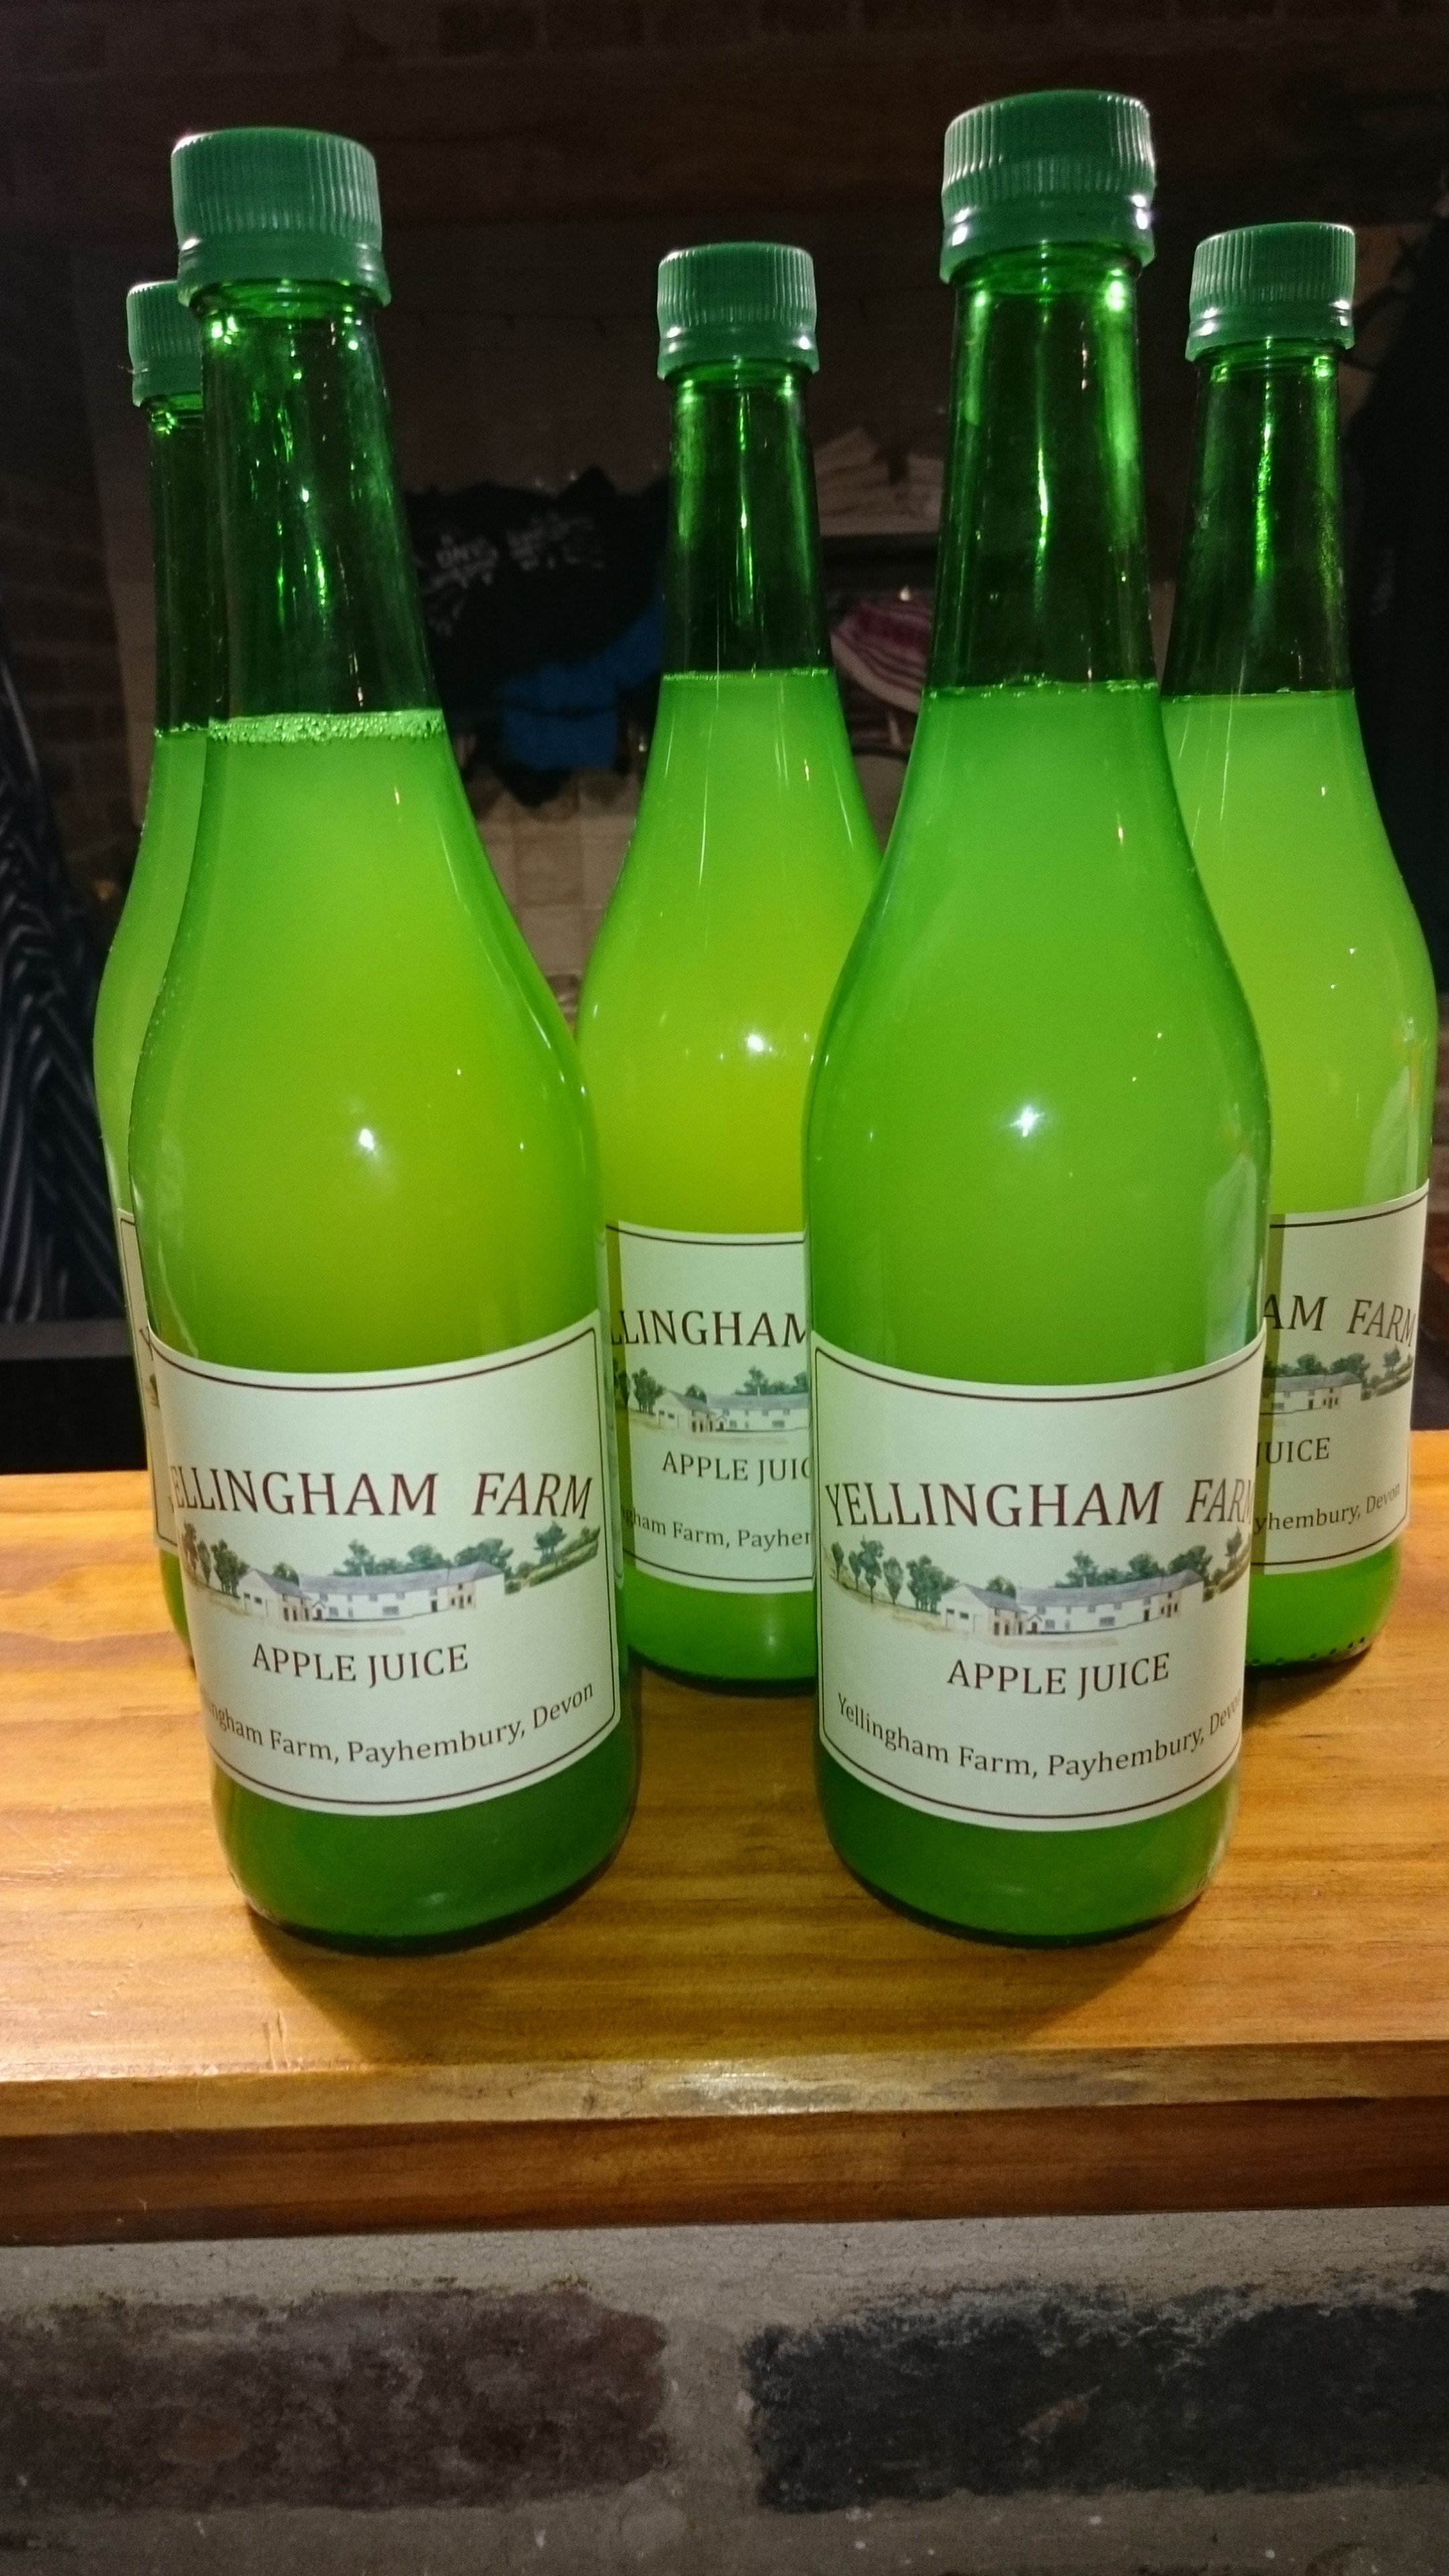 Yellingham apple juice bottles